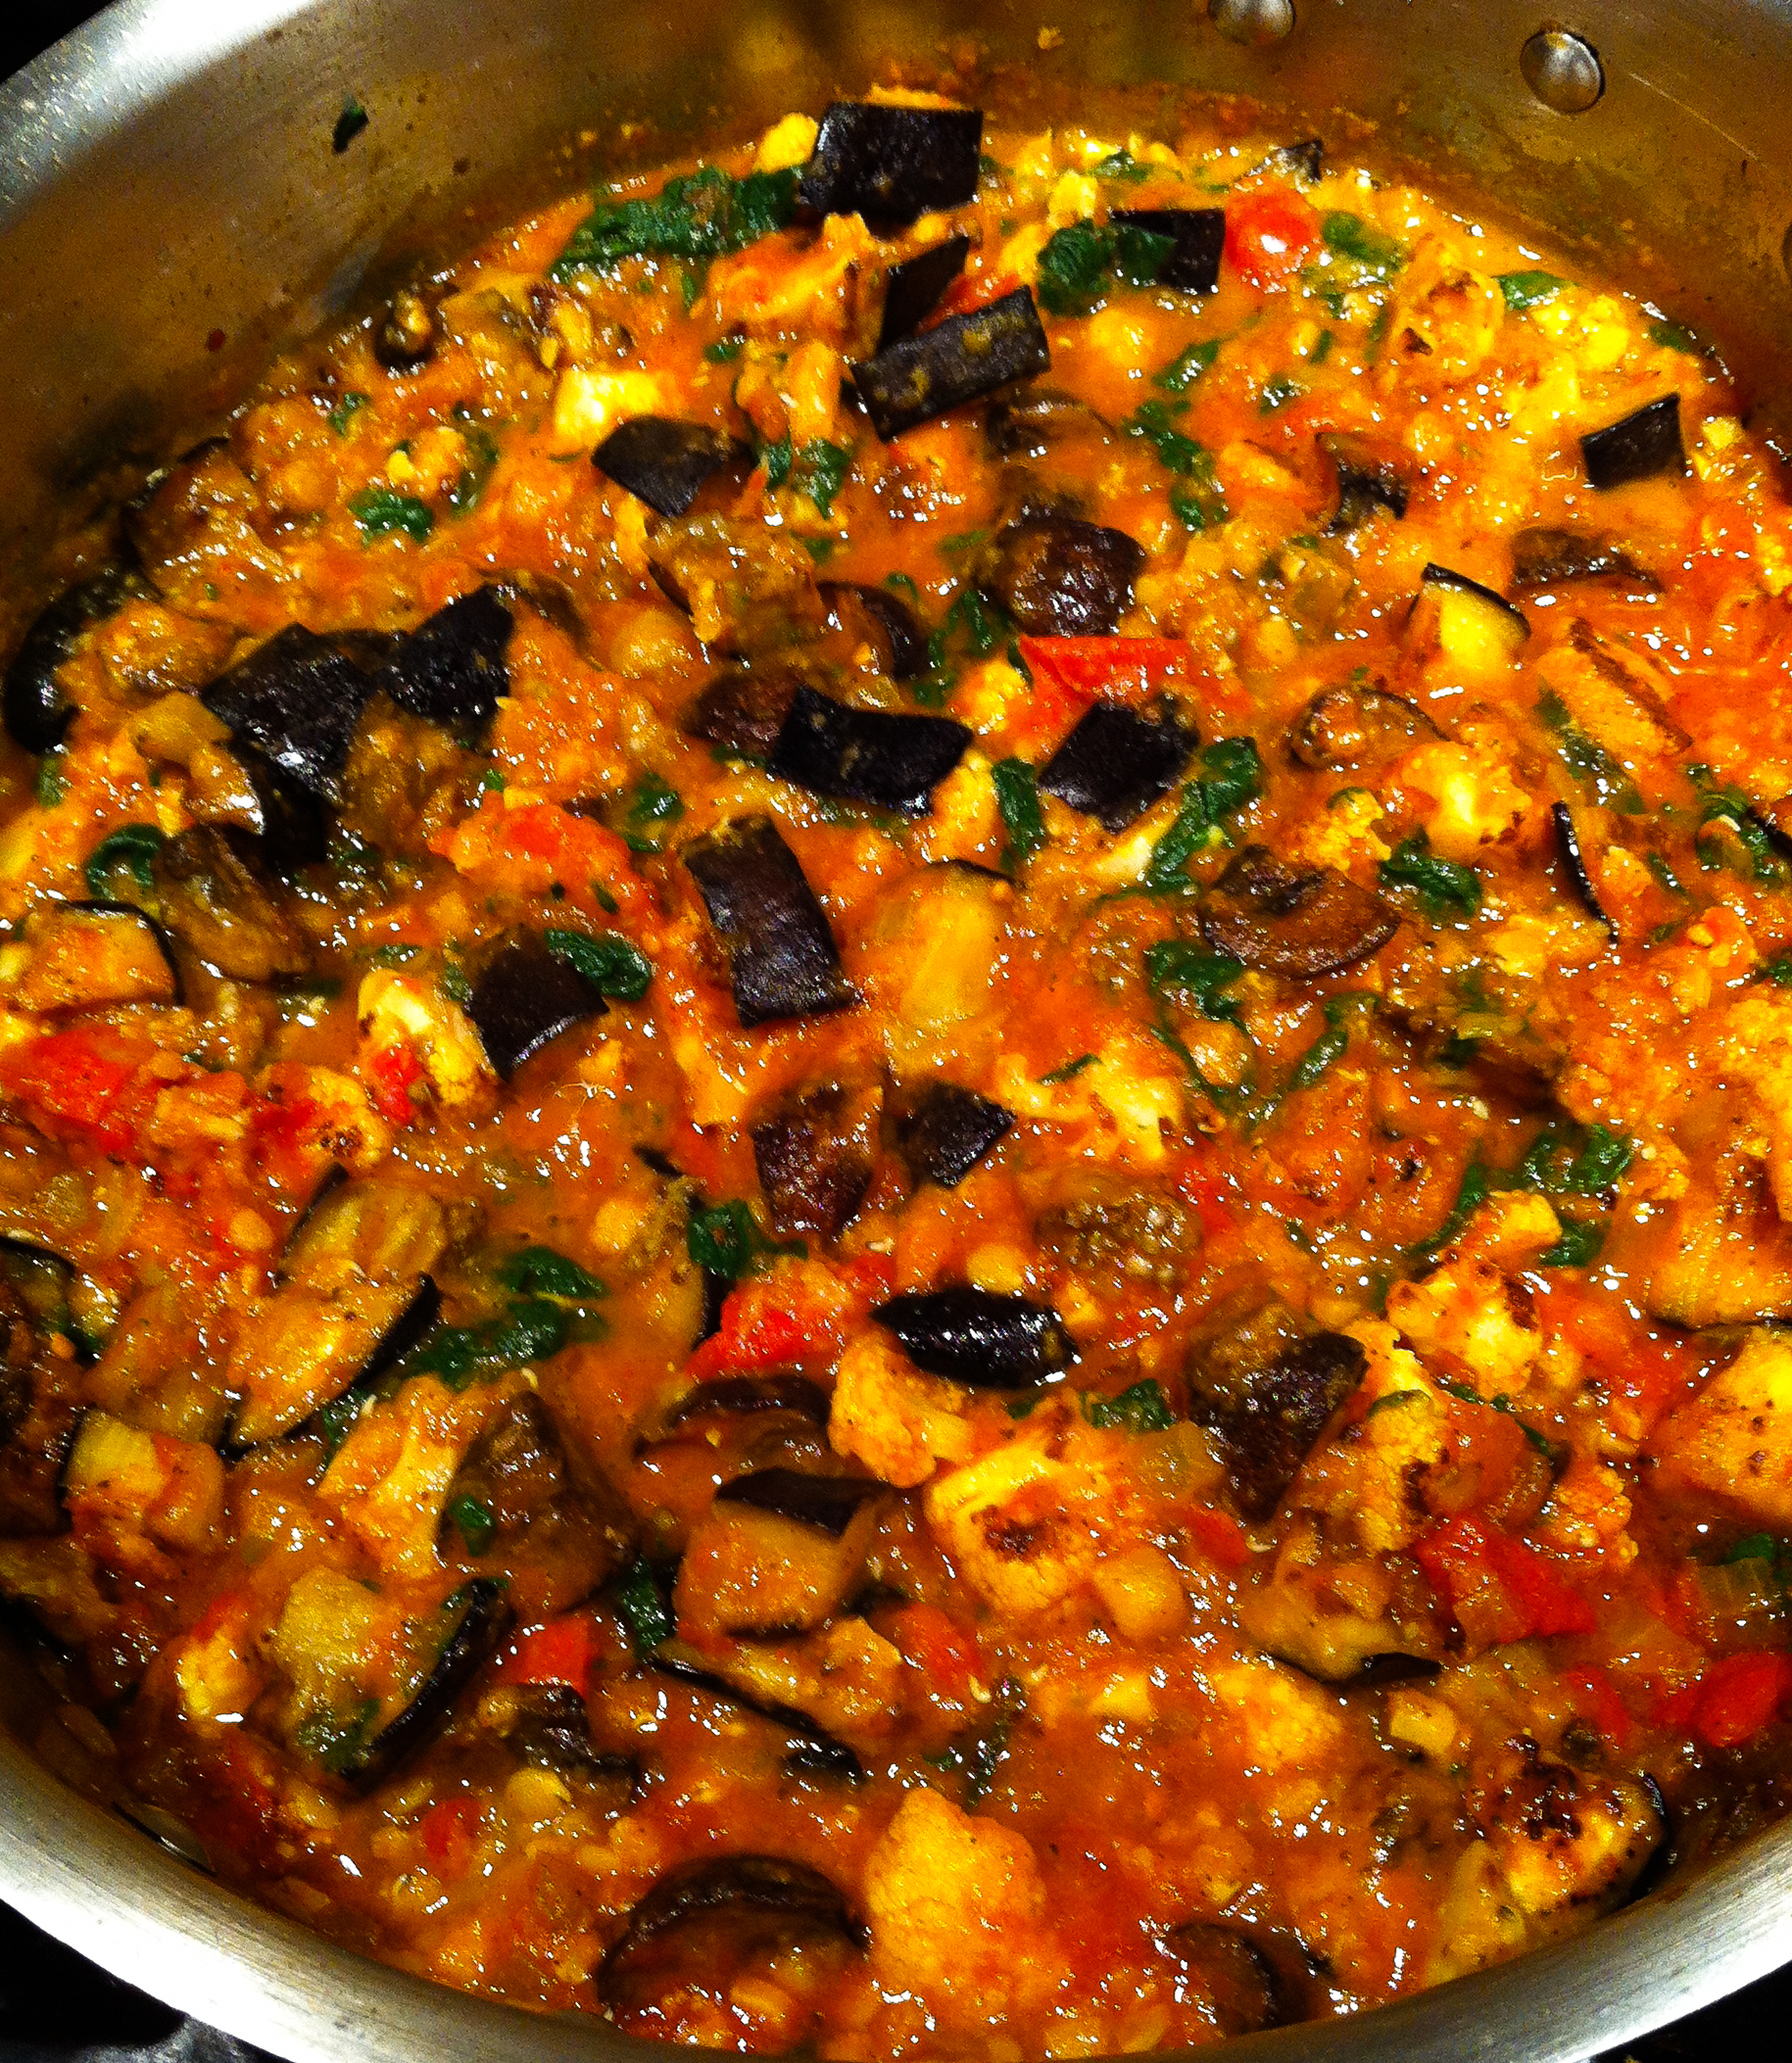 Indian-Style Red Lentil, Eggplant and Cauliflower Vegetable Stew